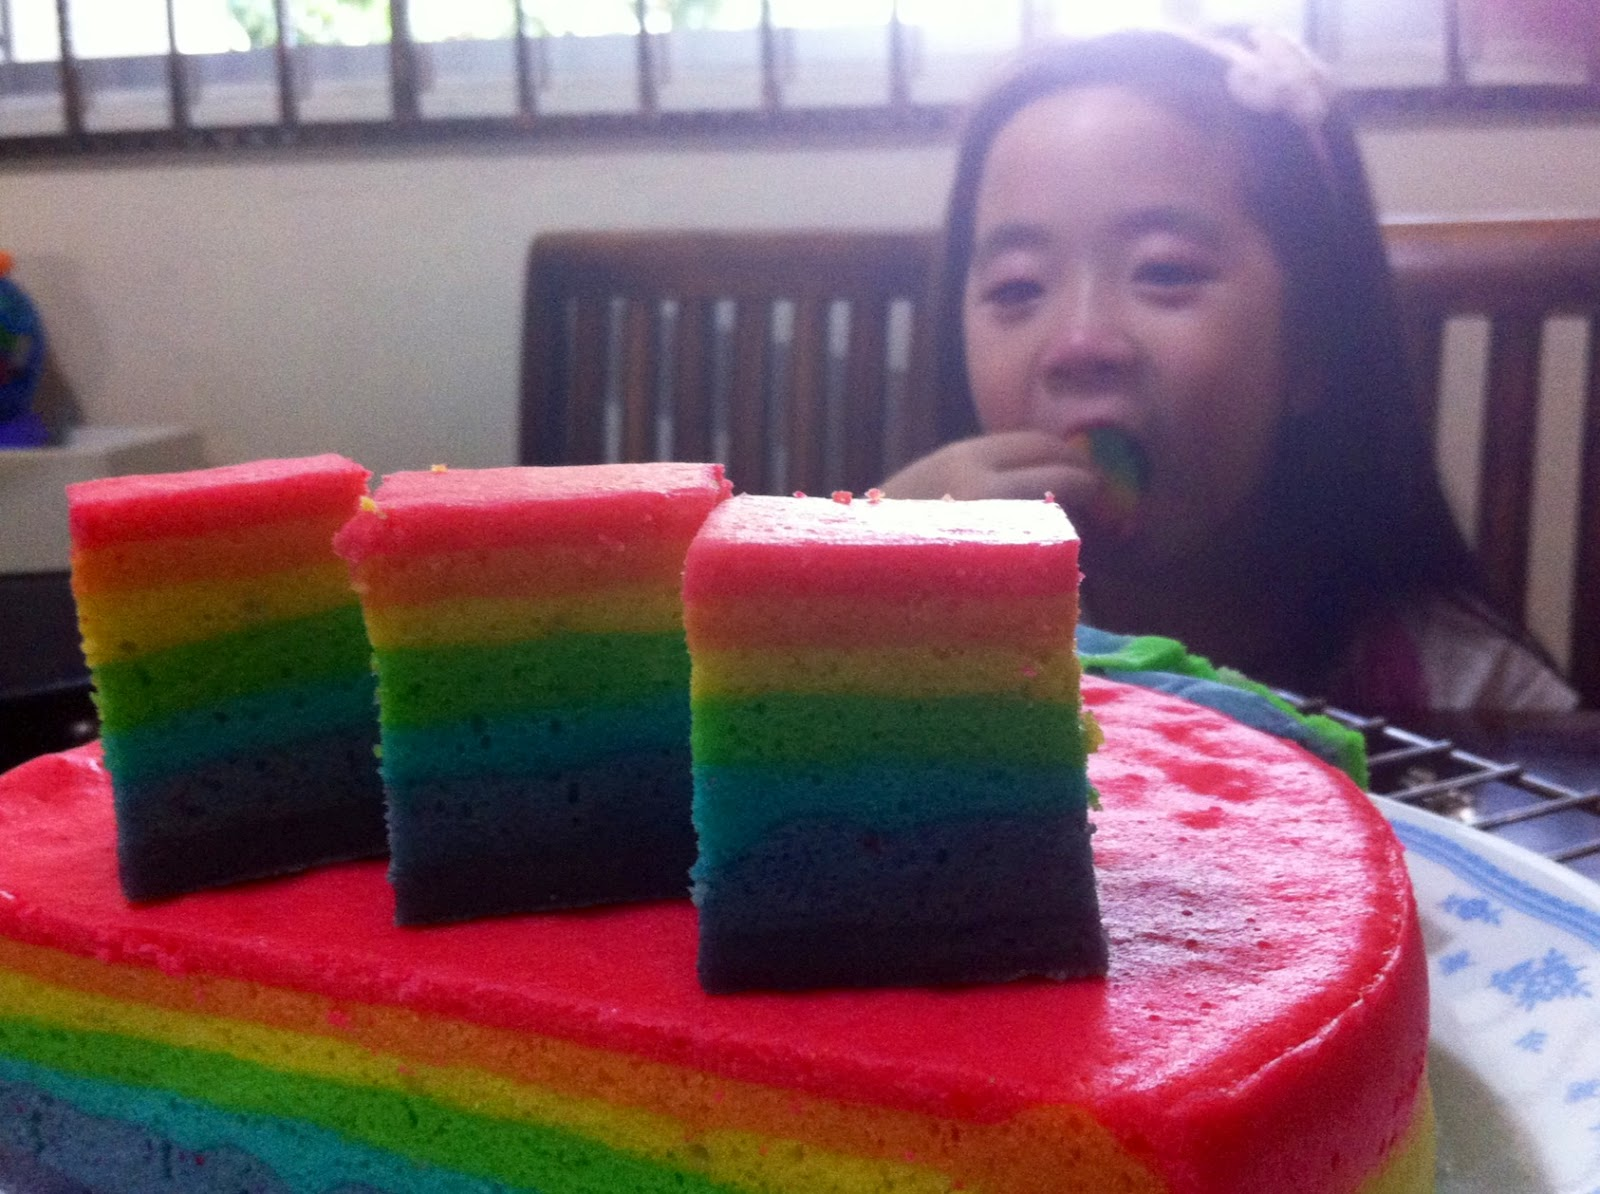 Steamed Rainbow Cake: Mum Loves Cooking: Another Rainbow Cake... Steamed